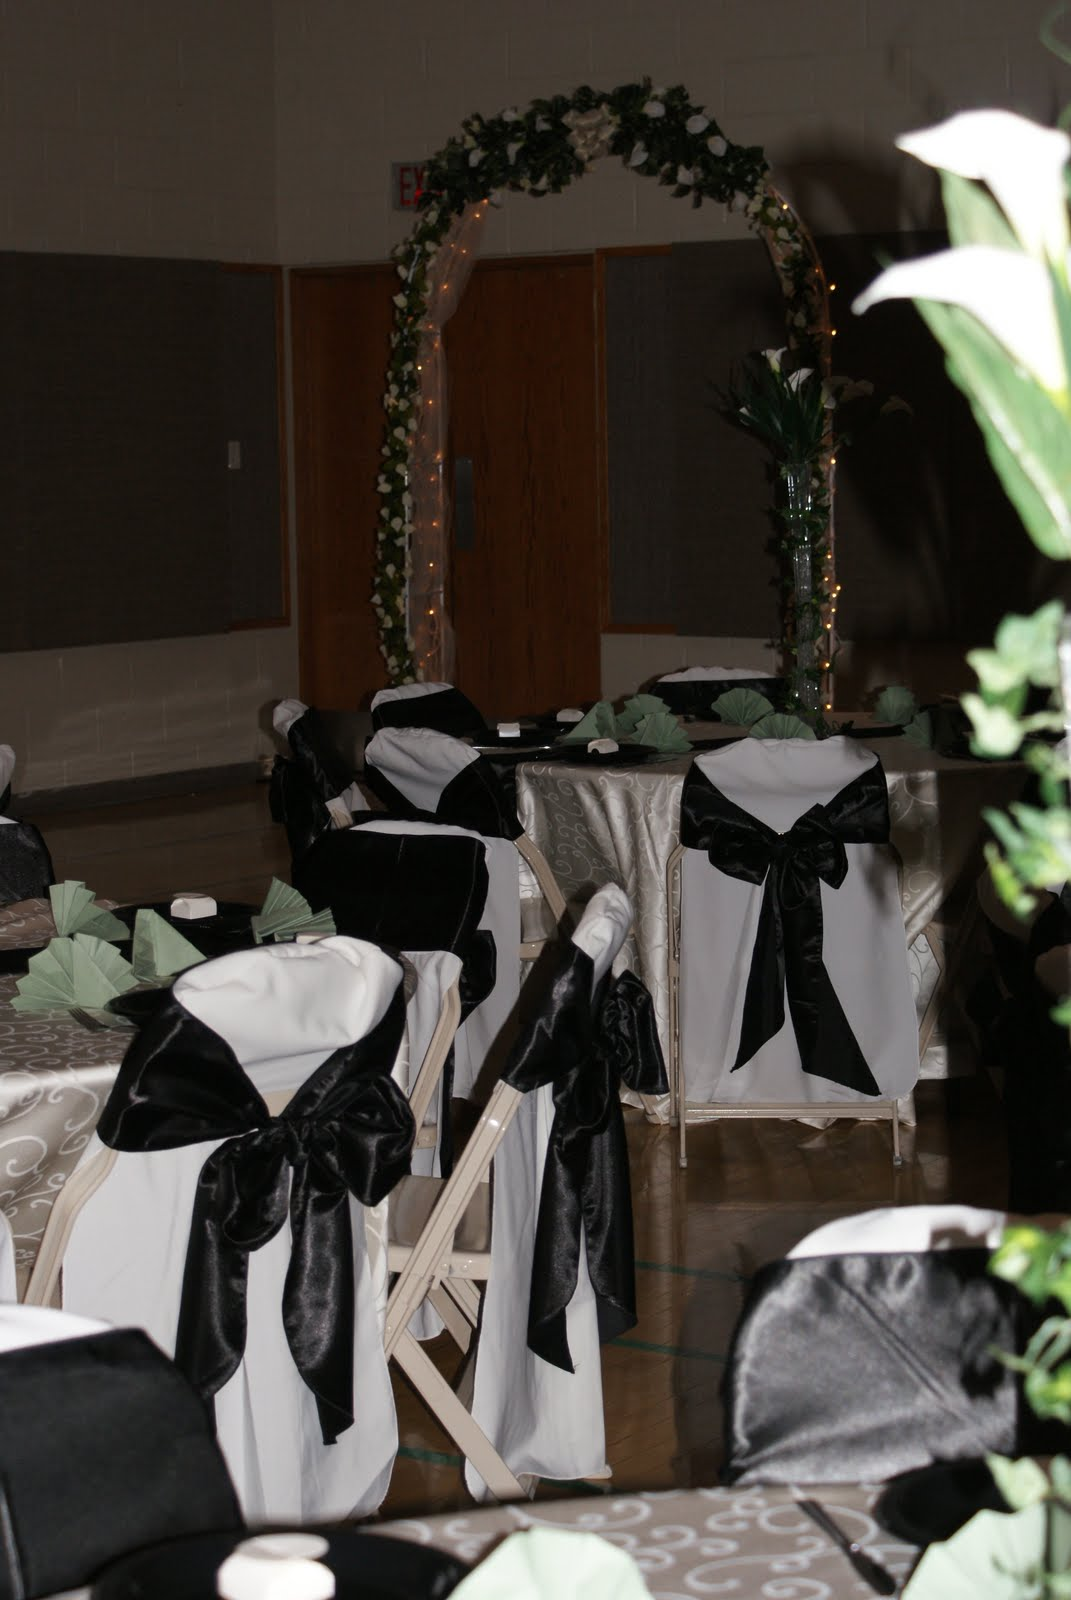 anna chair cover & wedding linens rental burnaby bc video game chairs walmart memorable moments decor rentals ivory black and sage